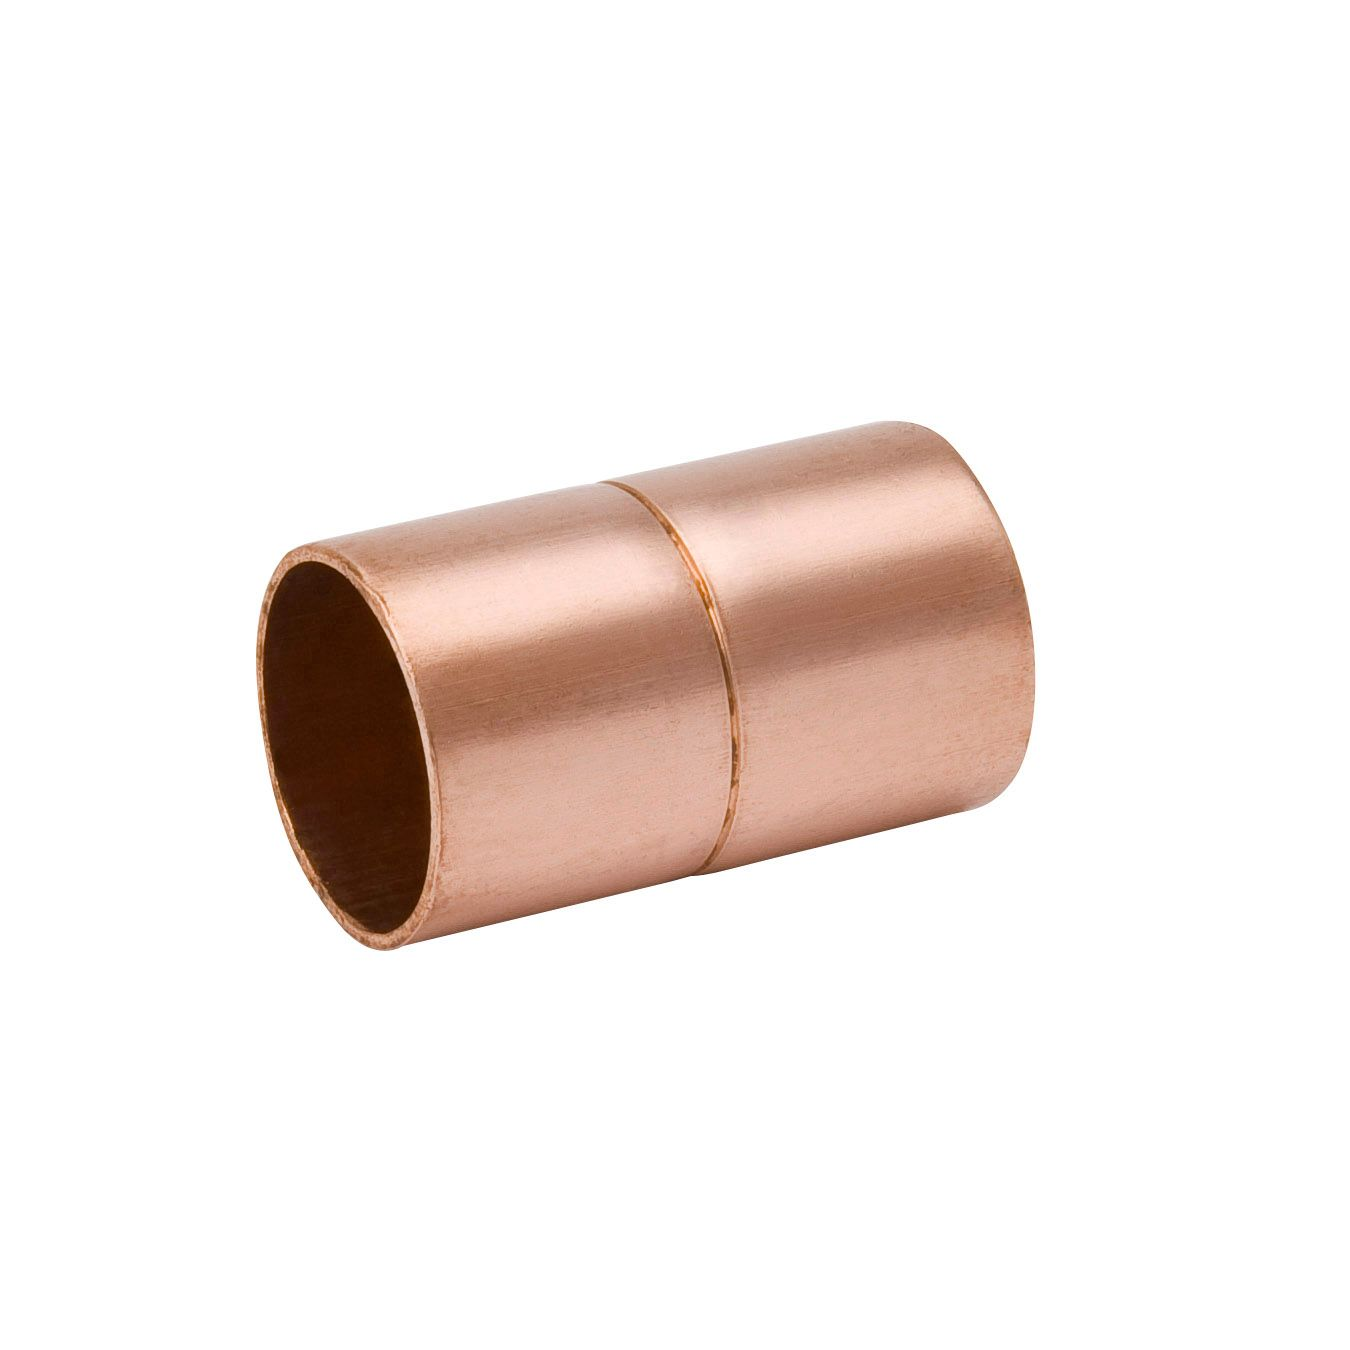 Libra Supply 2/'/' x 1-1//4/'/' inch Copper Pressure Coupling Bell Reducer CxC